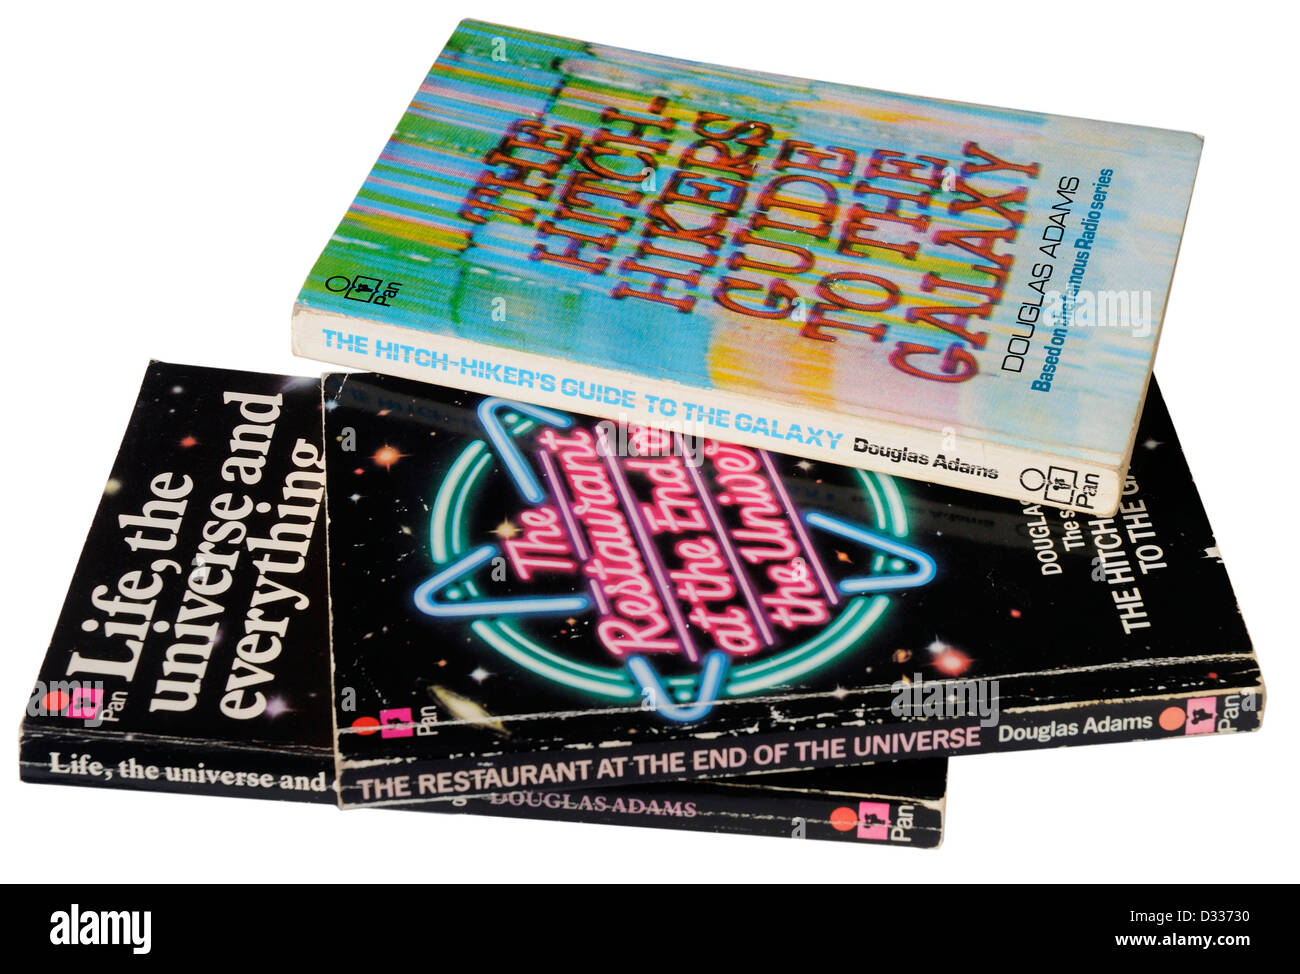 The Hitch Hikers Guide to the Galaxy trilogy by Douglas Adams - Stock Image